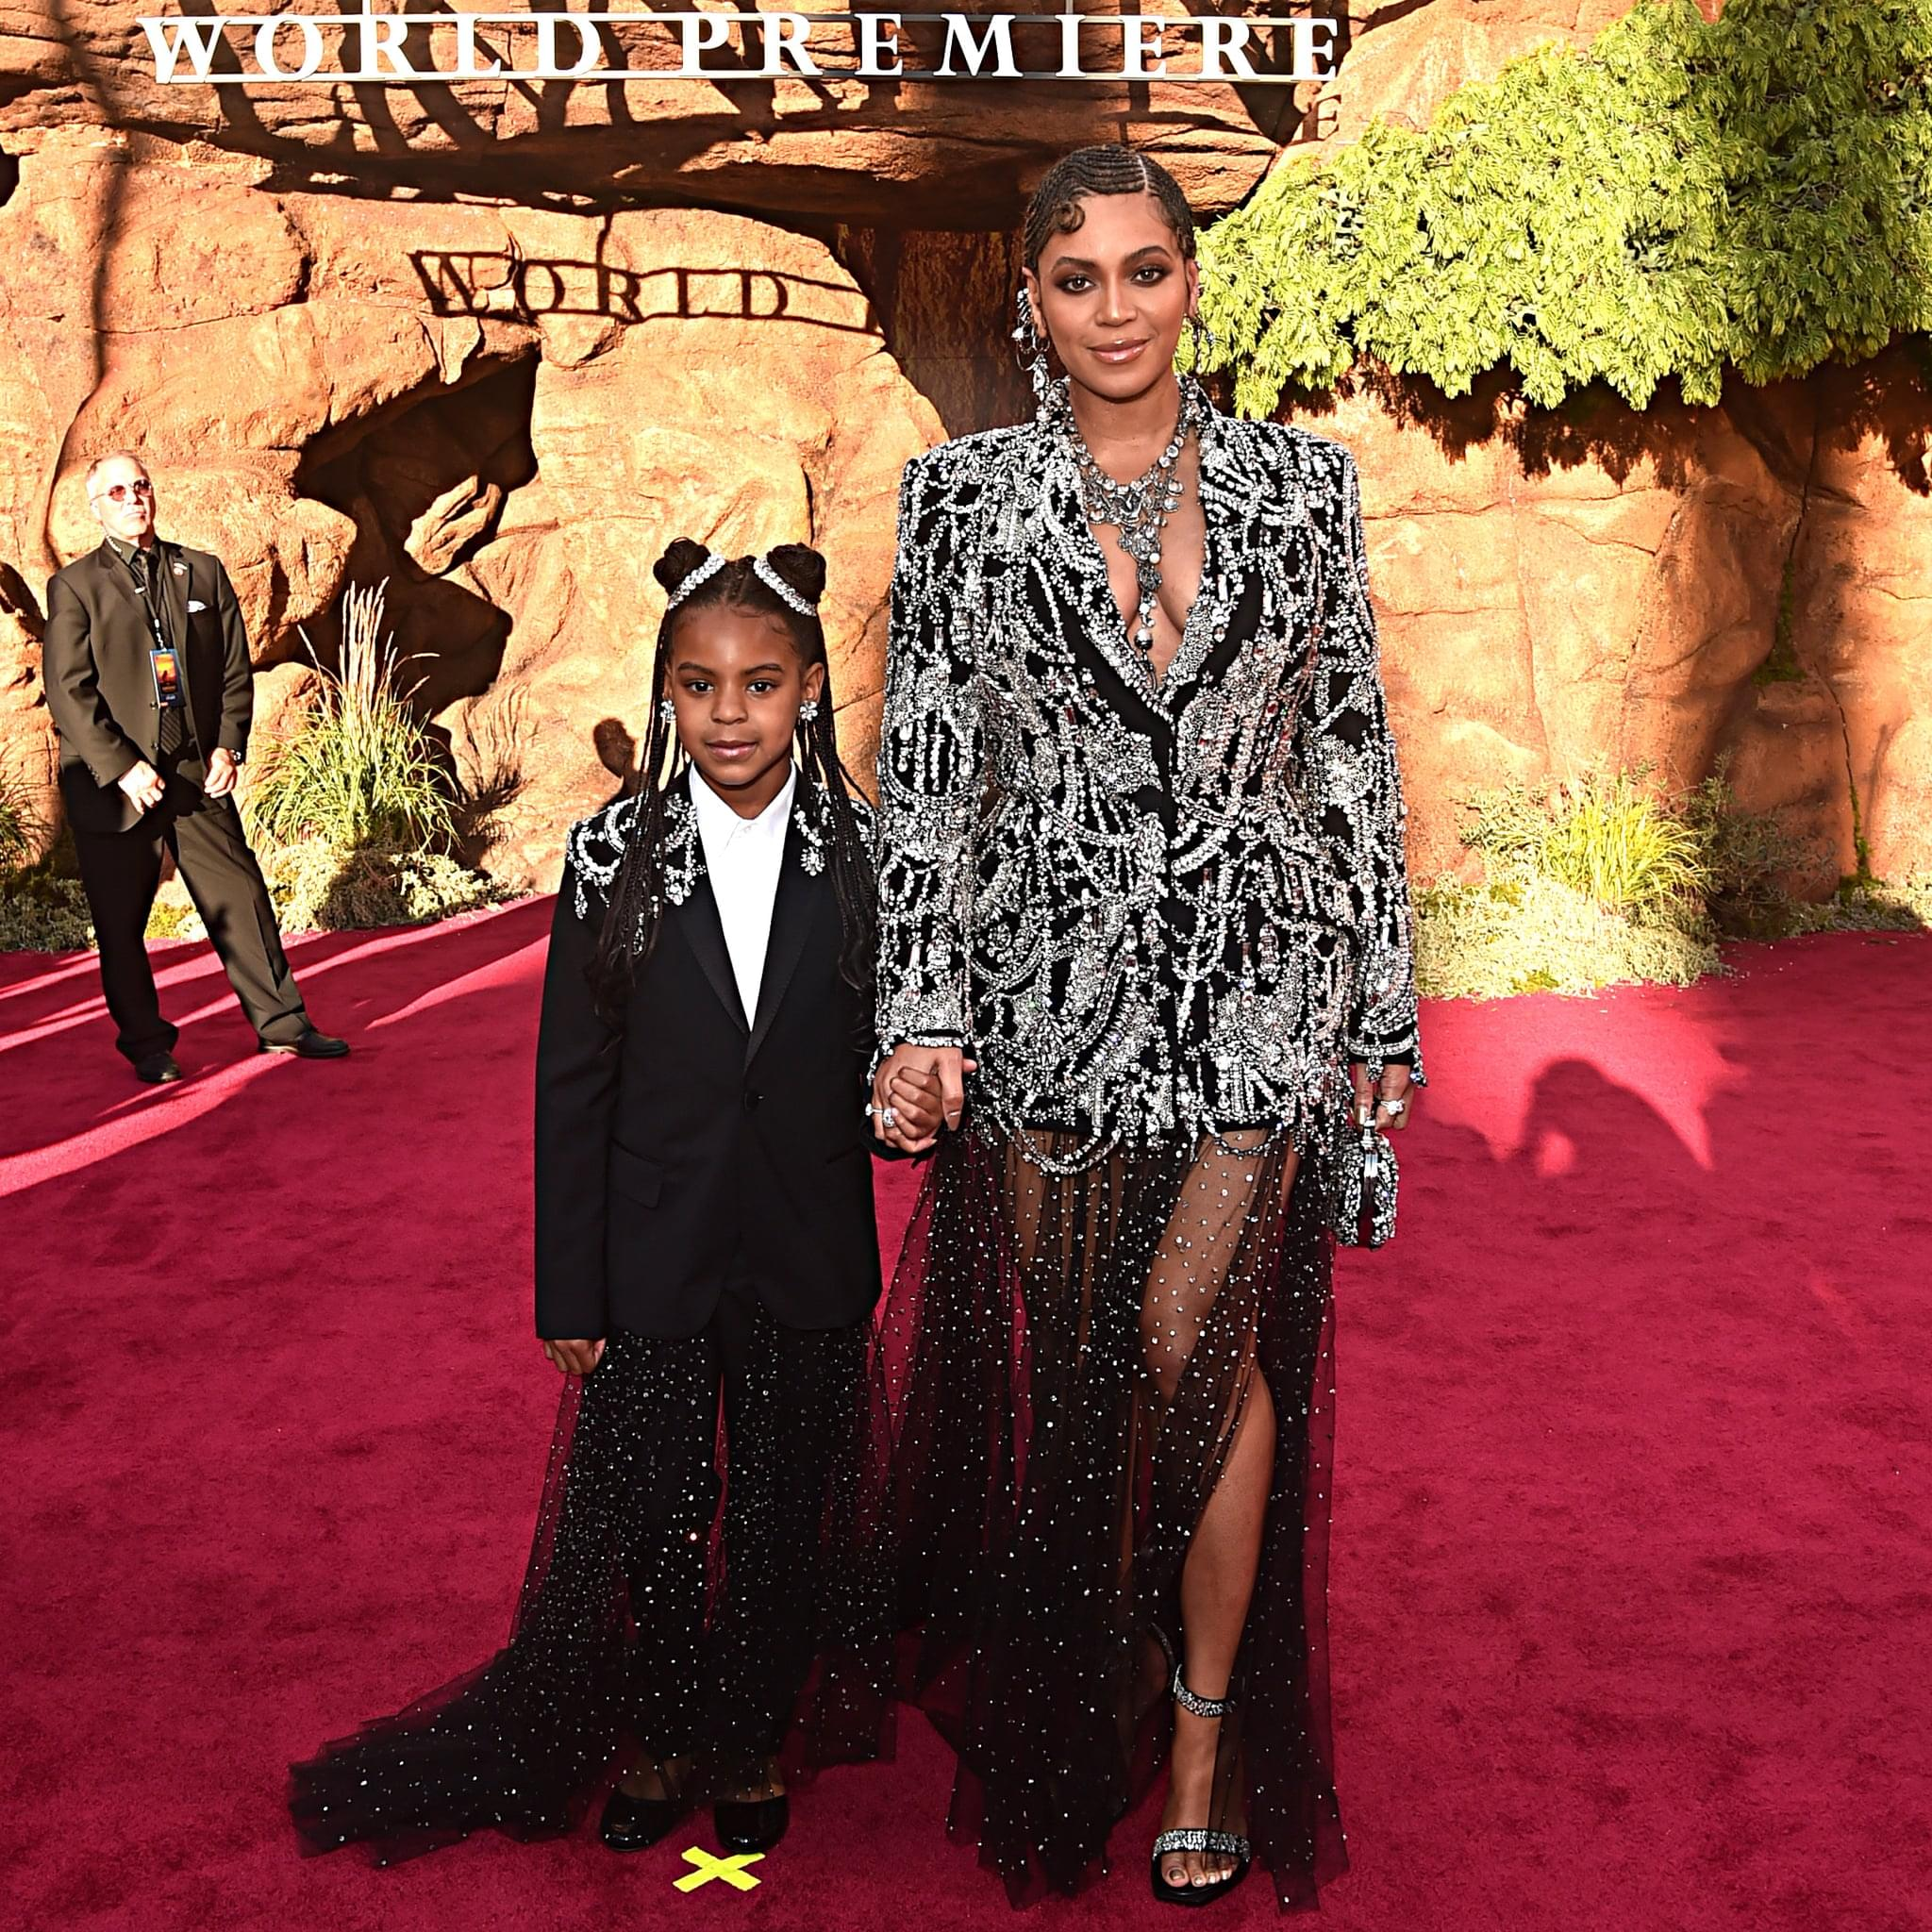 At Just 9 Years Old, Blue Ivy Is Officially a Grammy Winner